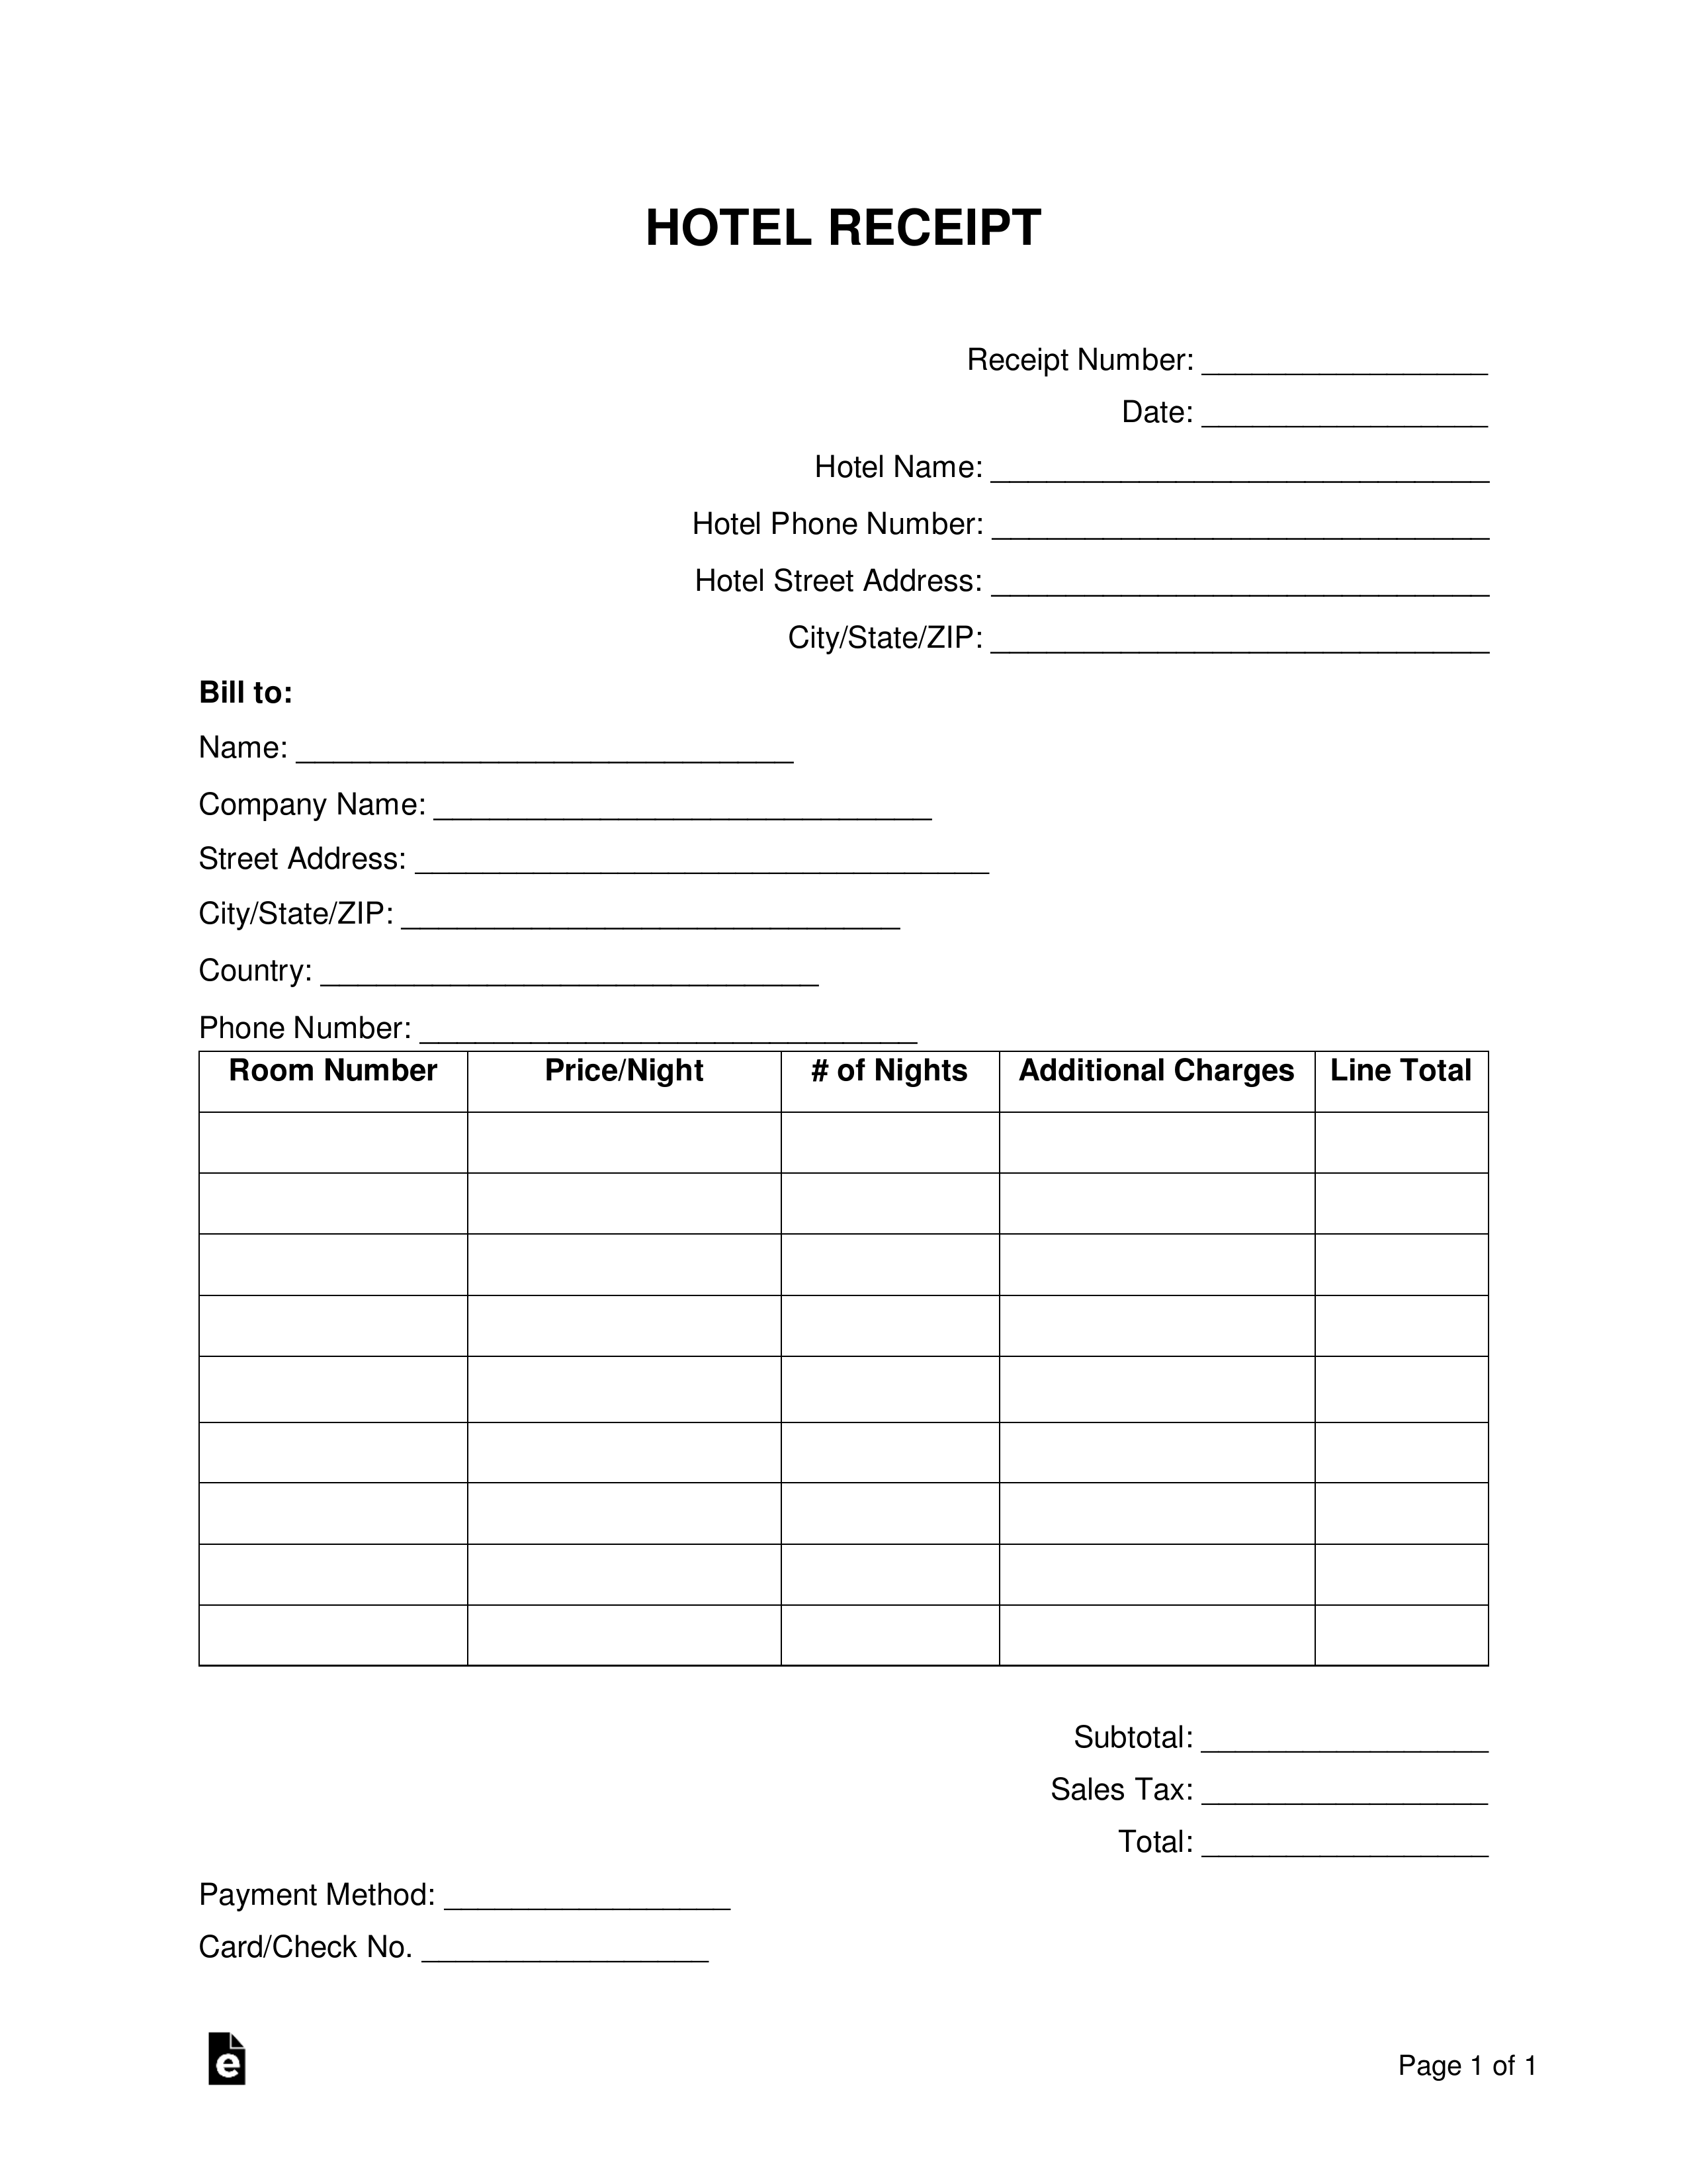 Free Hotel Receipt Template Word Pdf Eforms Free